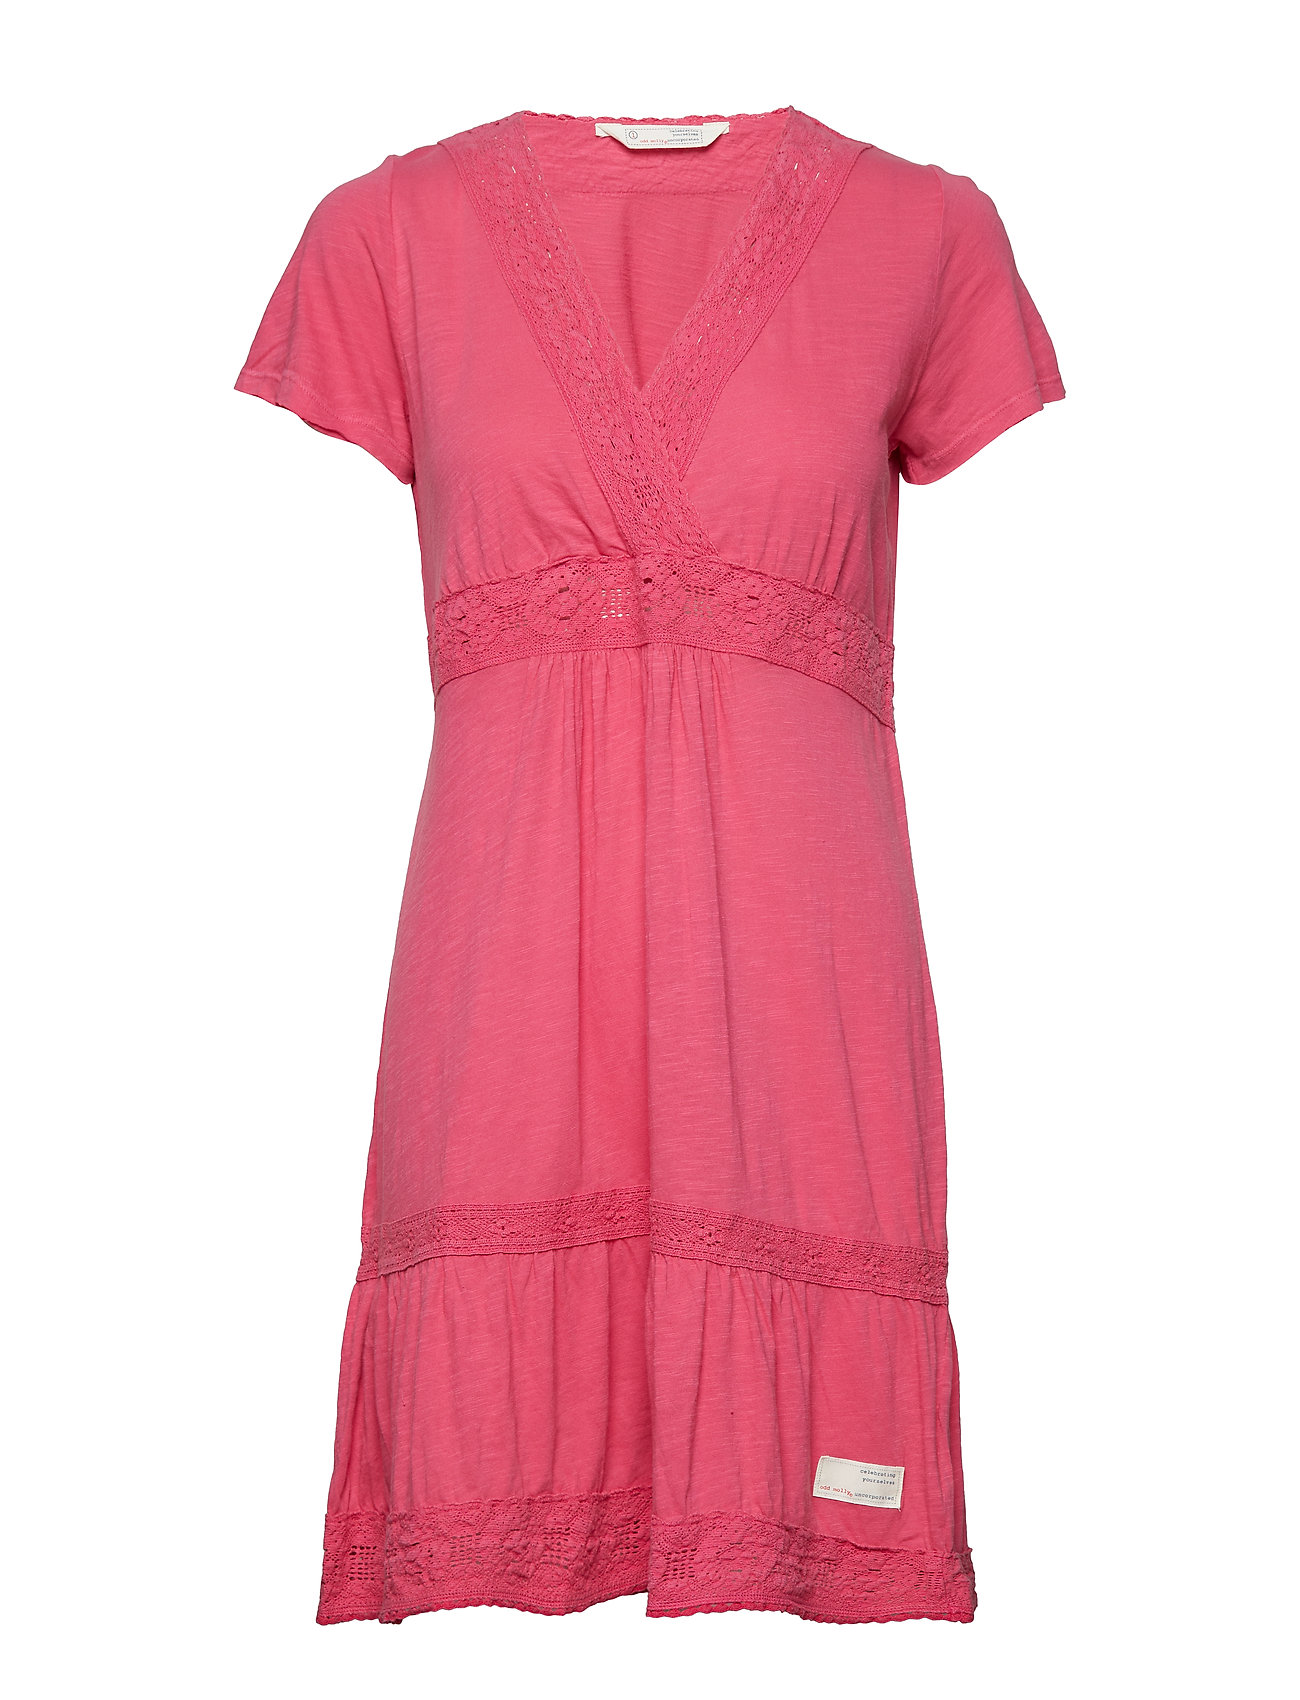 ODD MOLLY step over dress - DUSTY ROSE